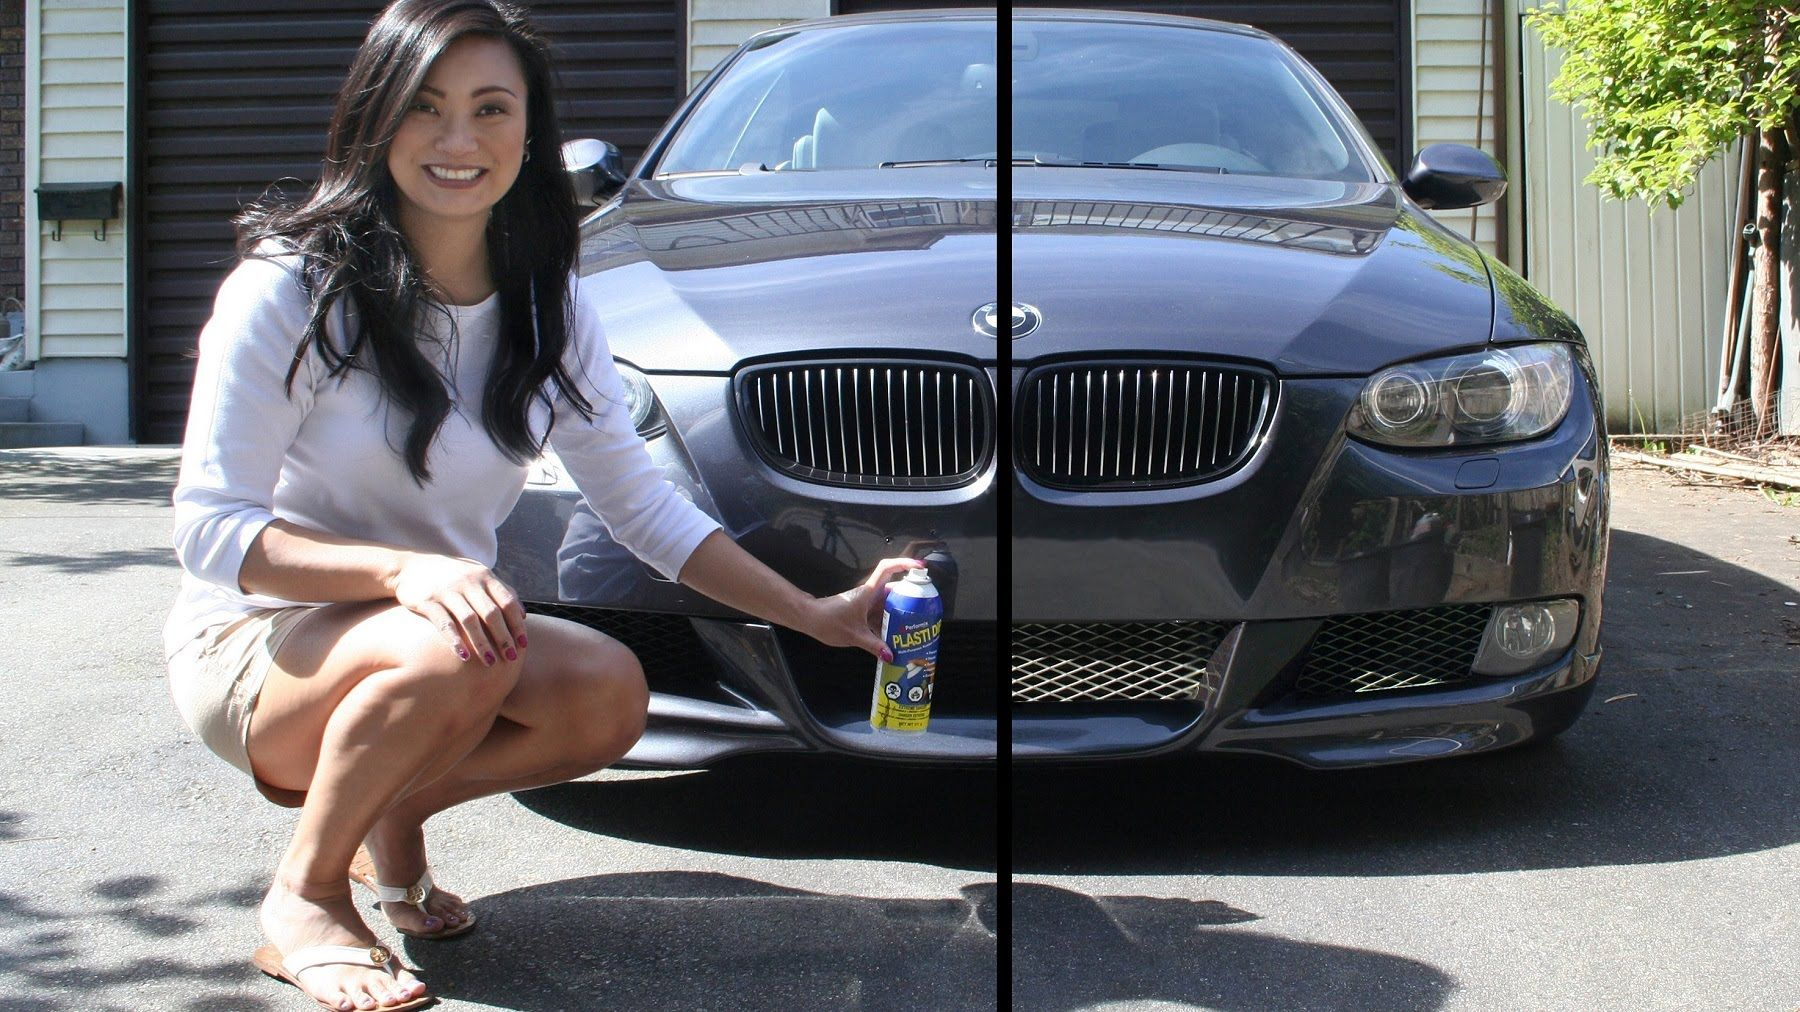 Paint your car in a garage in 1 hour dip your car youtube - How To Plasti Dip Your Car Front Grille